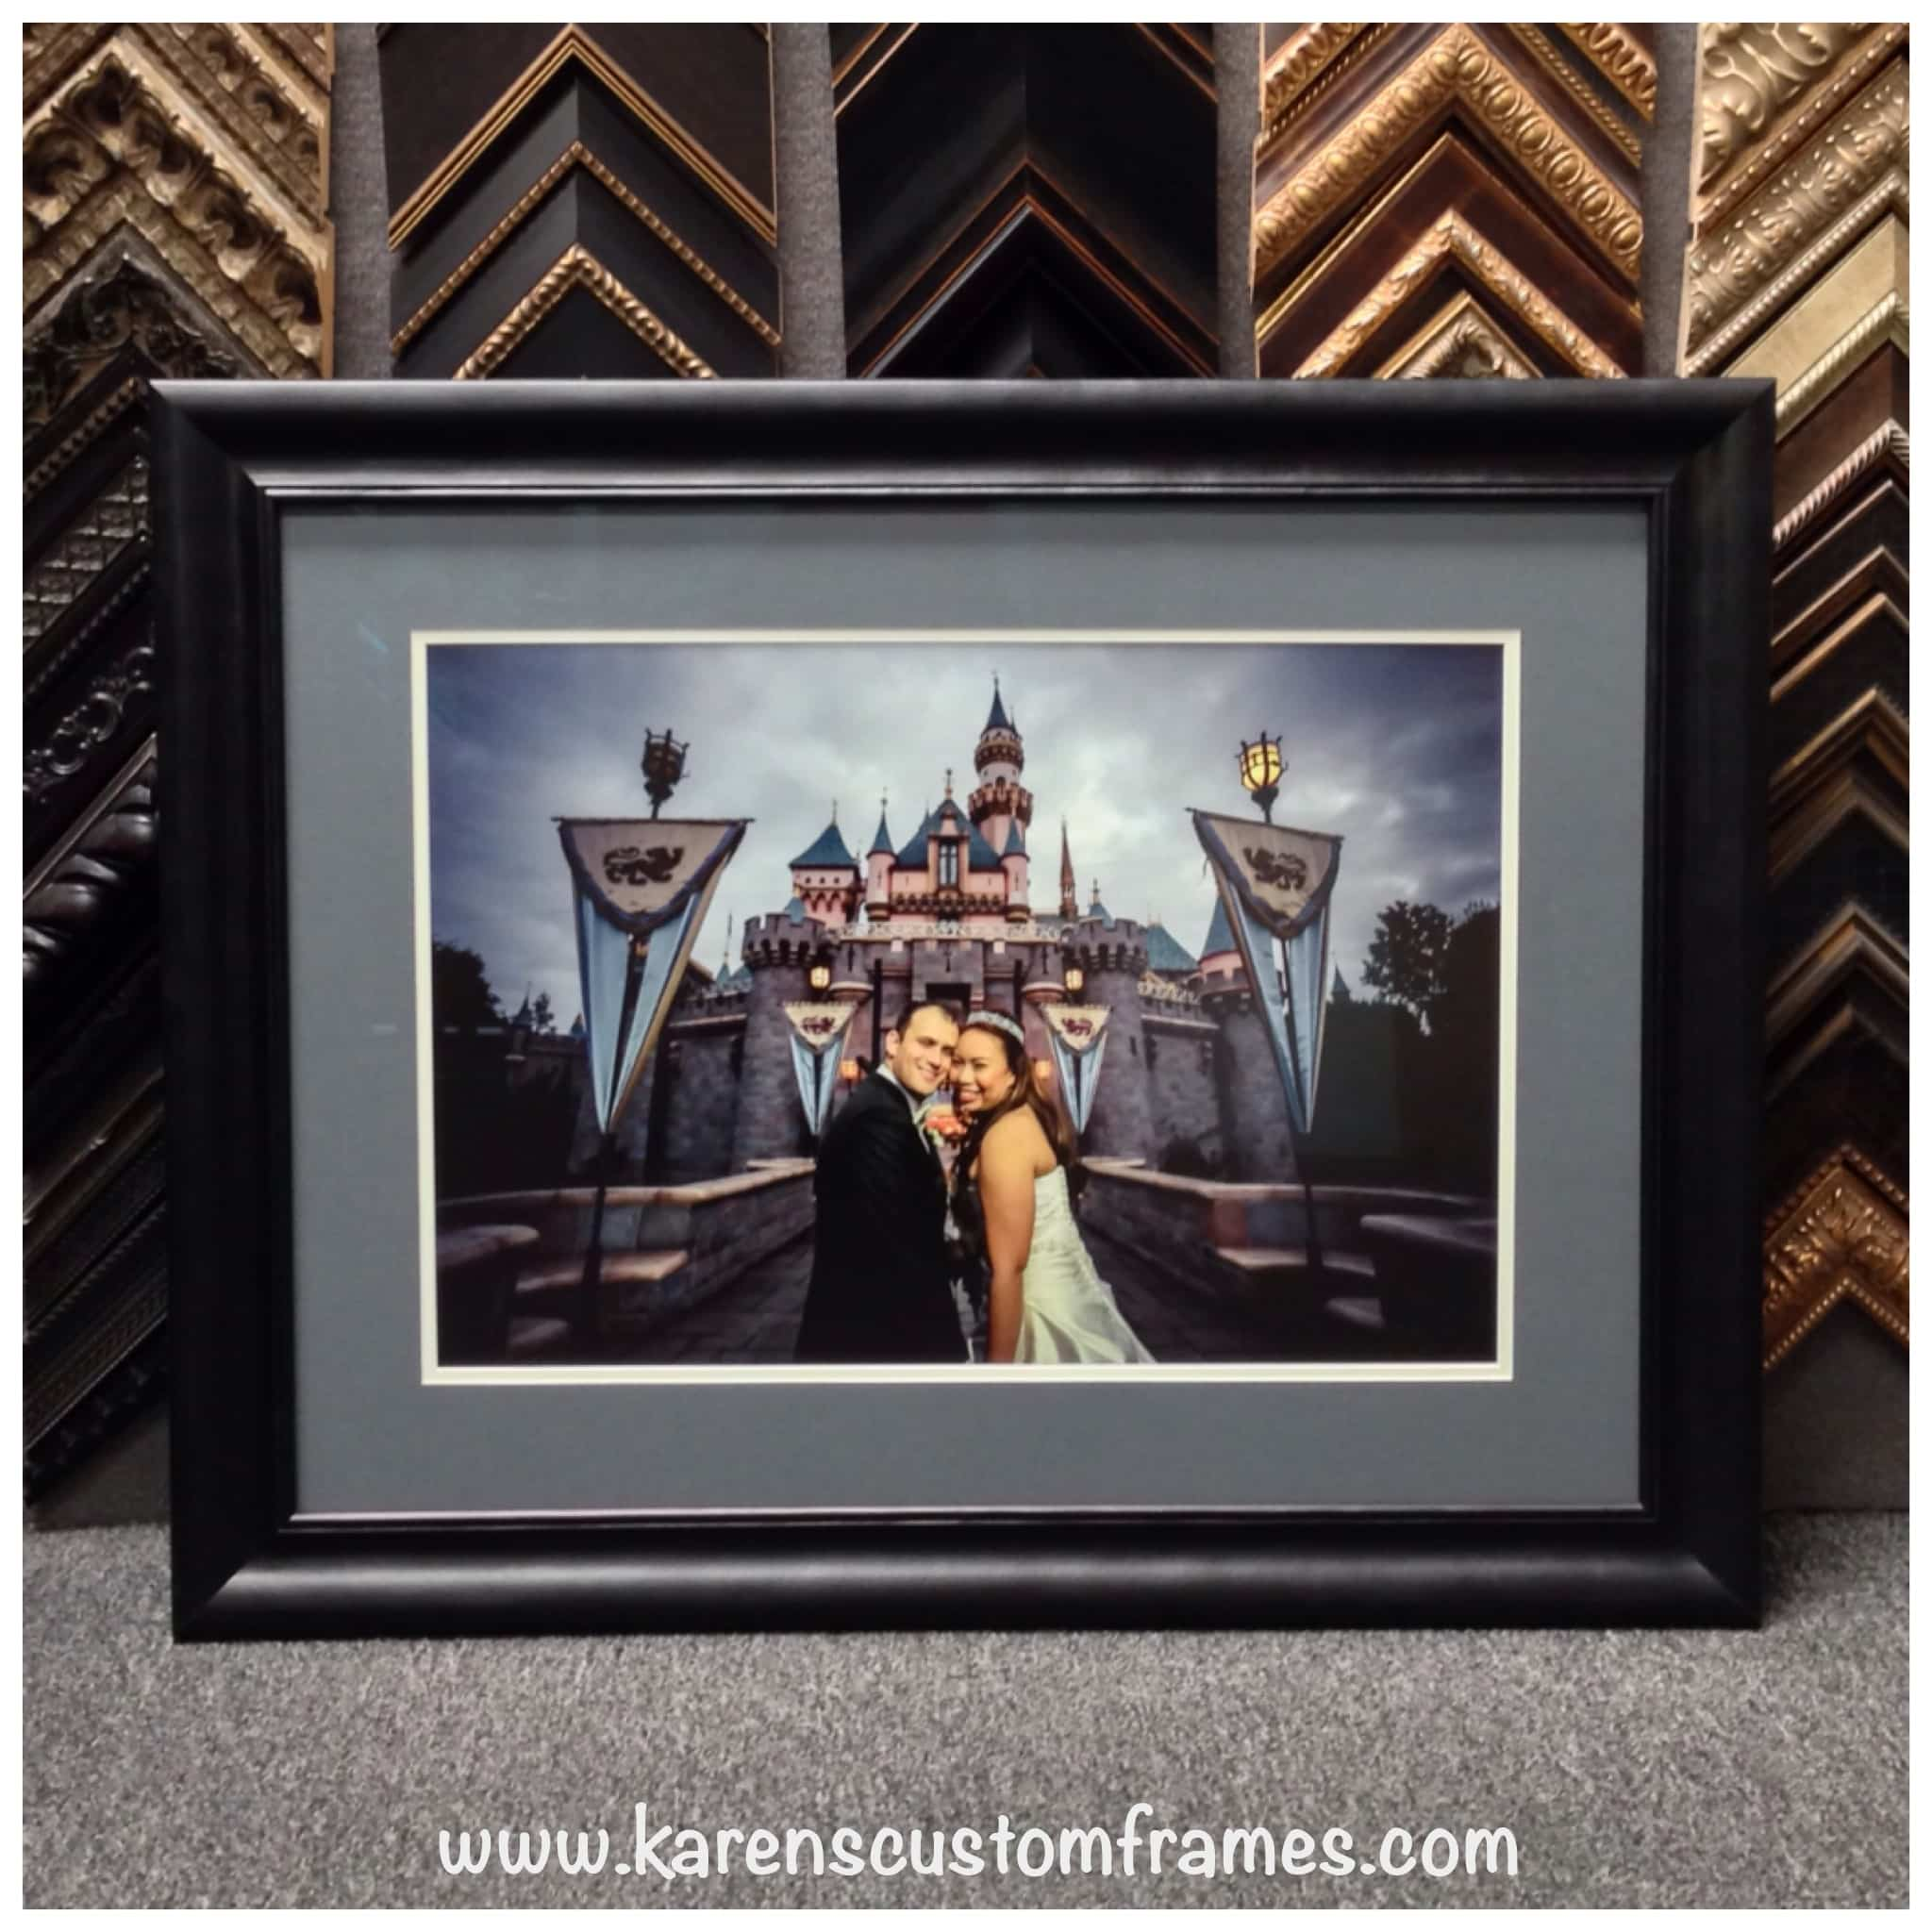 Wedding Photo | Custom Design and Framing by Karen's Detail Custom Frames